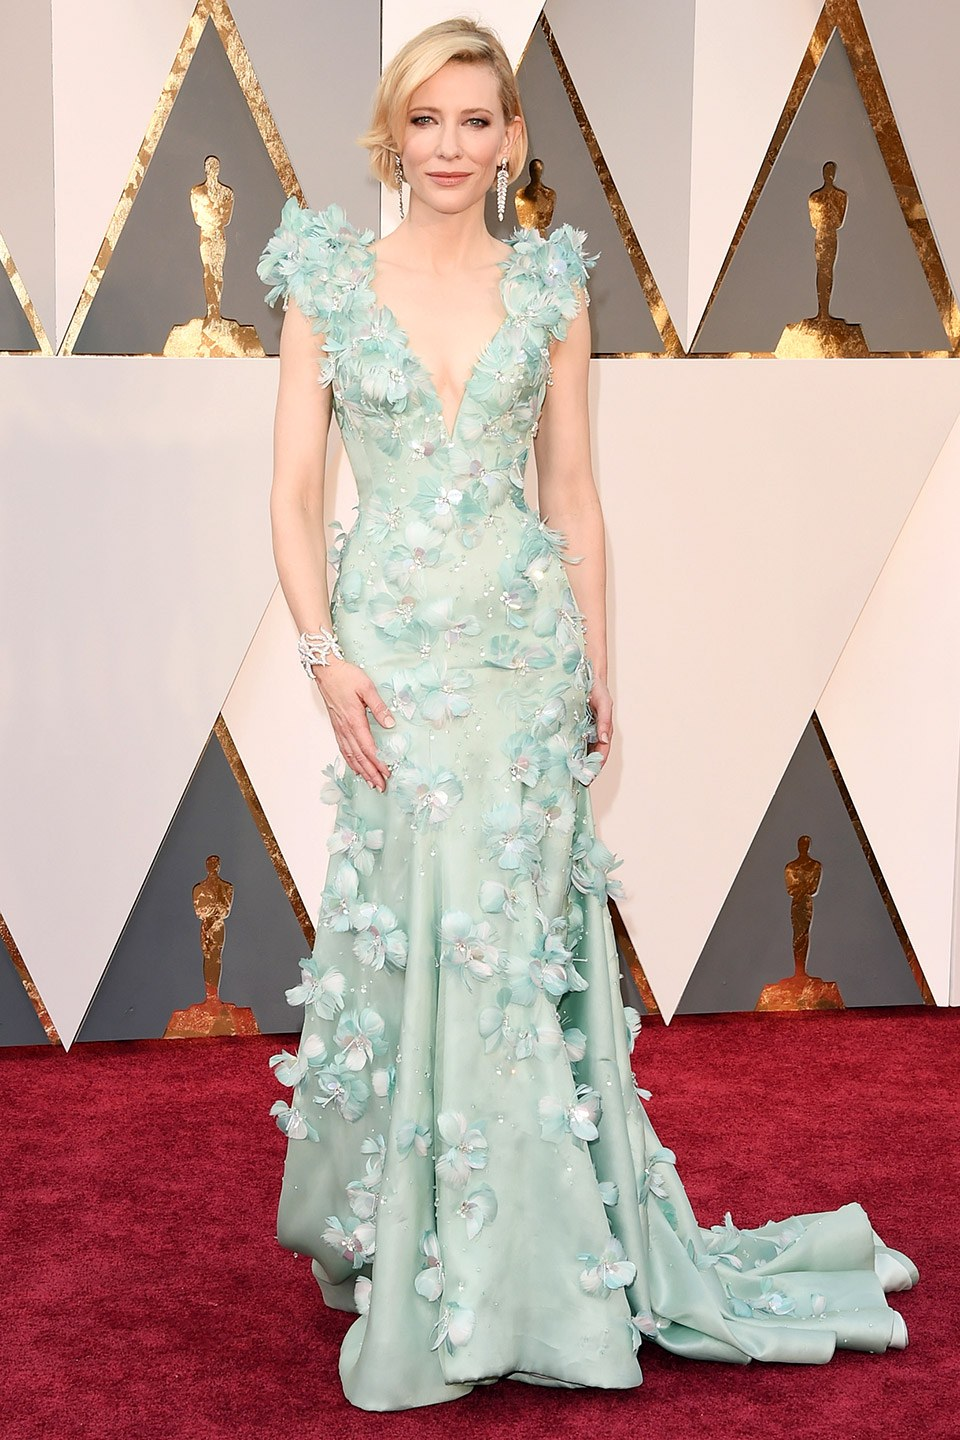 oscars-red-carpet-2016-best-dressed-cate-blanchett Top Best 5 Red Carpet Looks in The 88th Academy Award